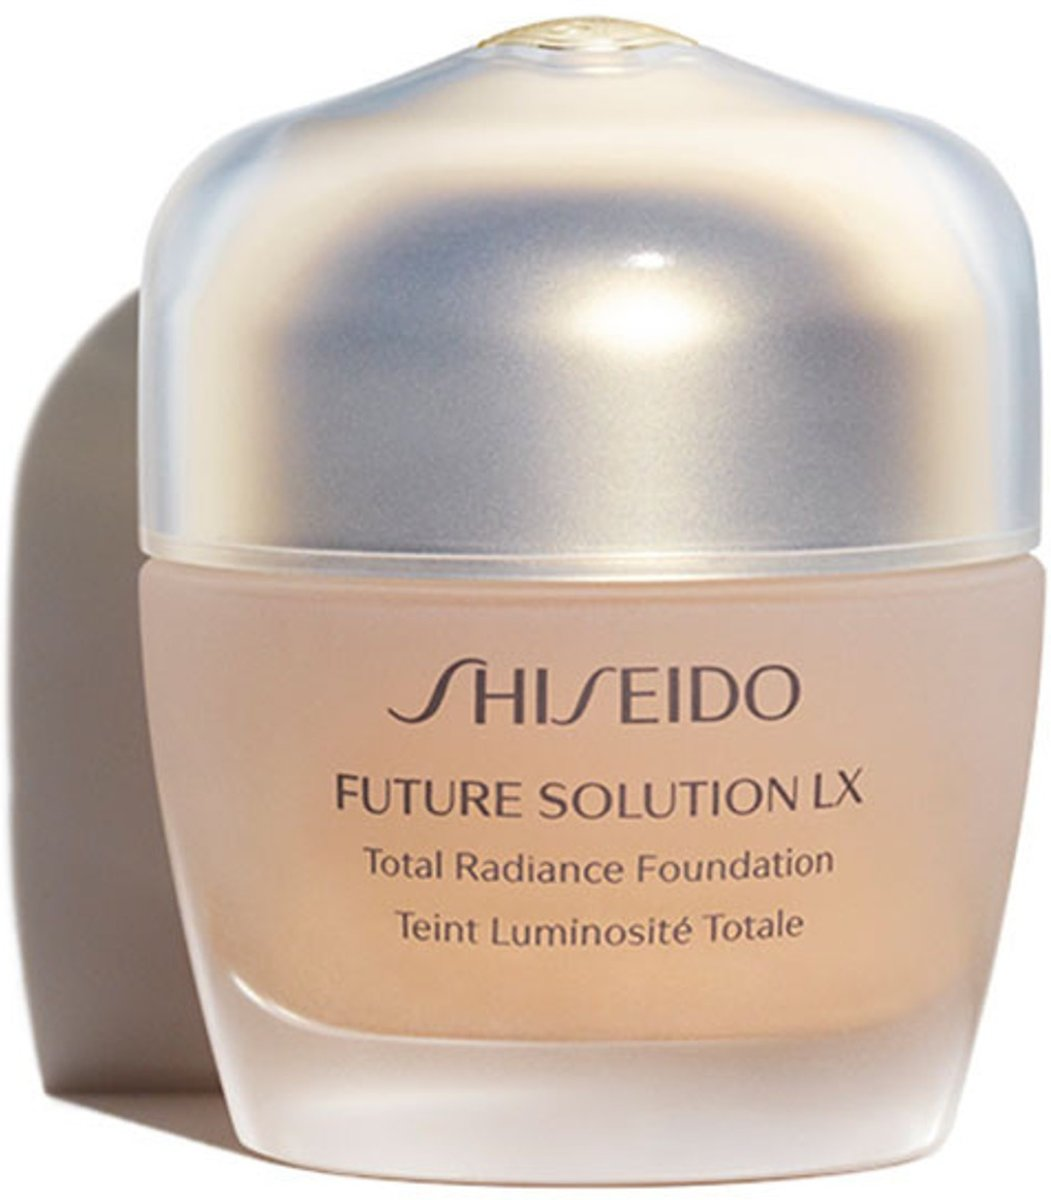 Shiseido - Future Solution LX Total Radiance Foundation - Neutral 4